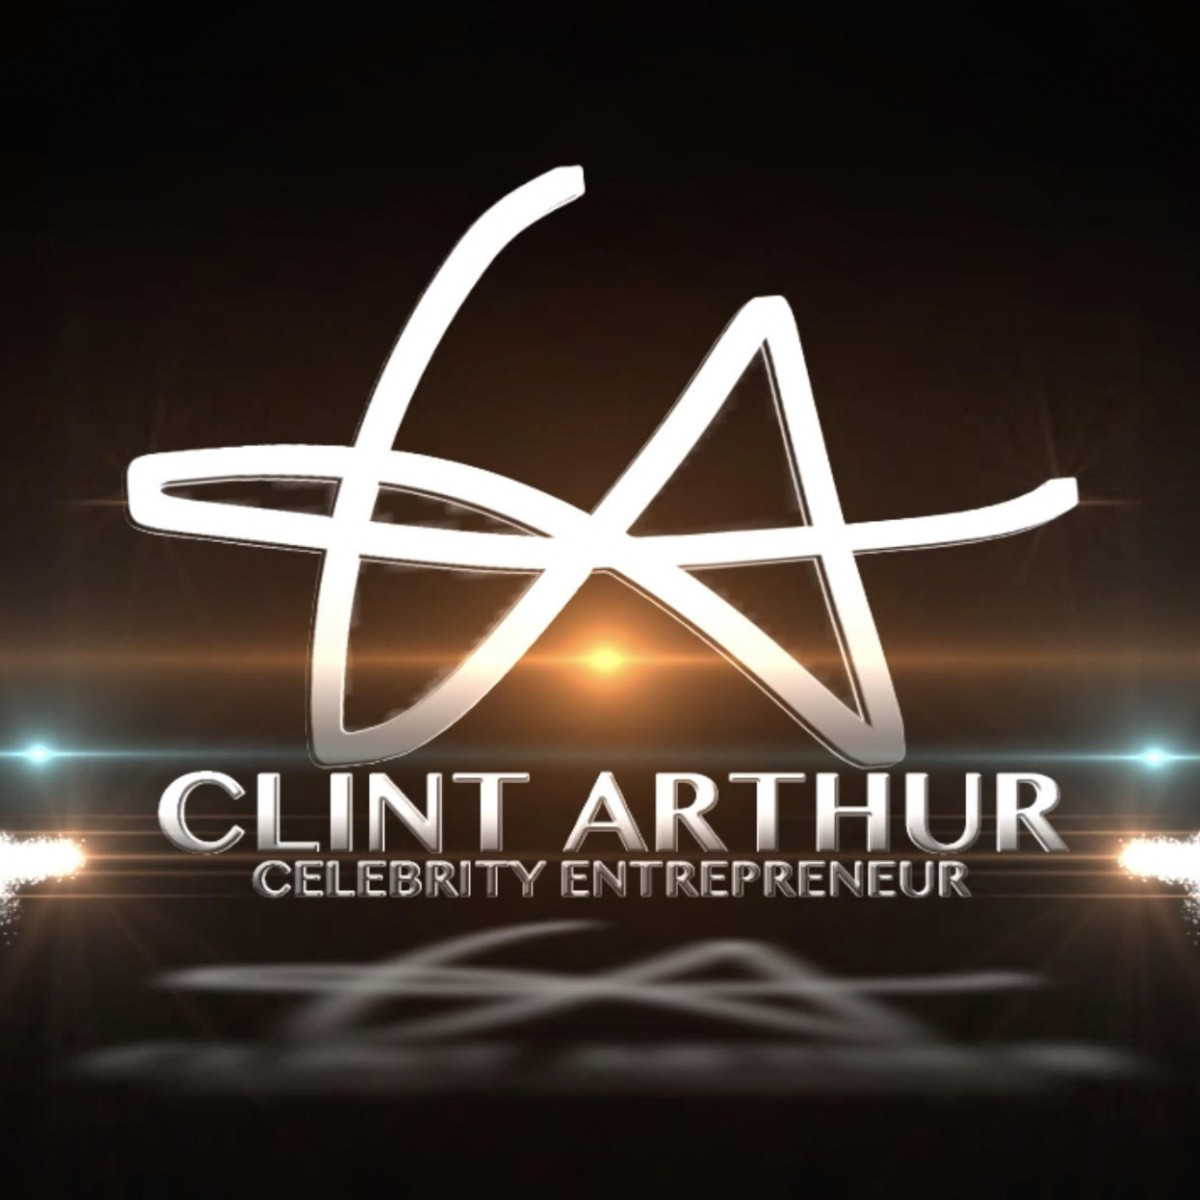 Clint Arthur Financial Advisor Marketing